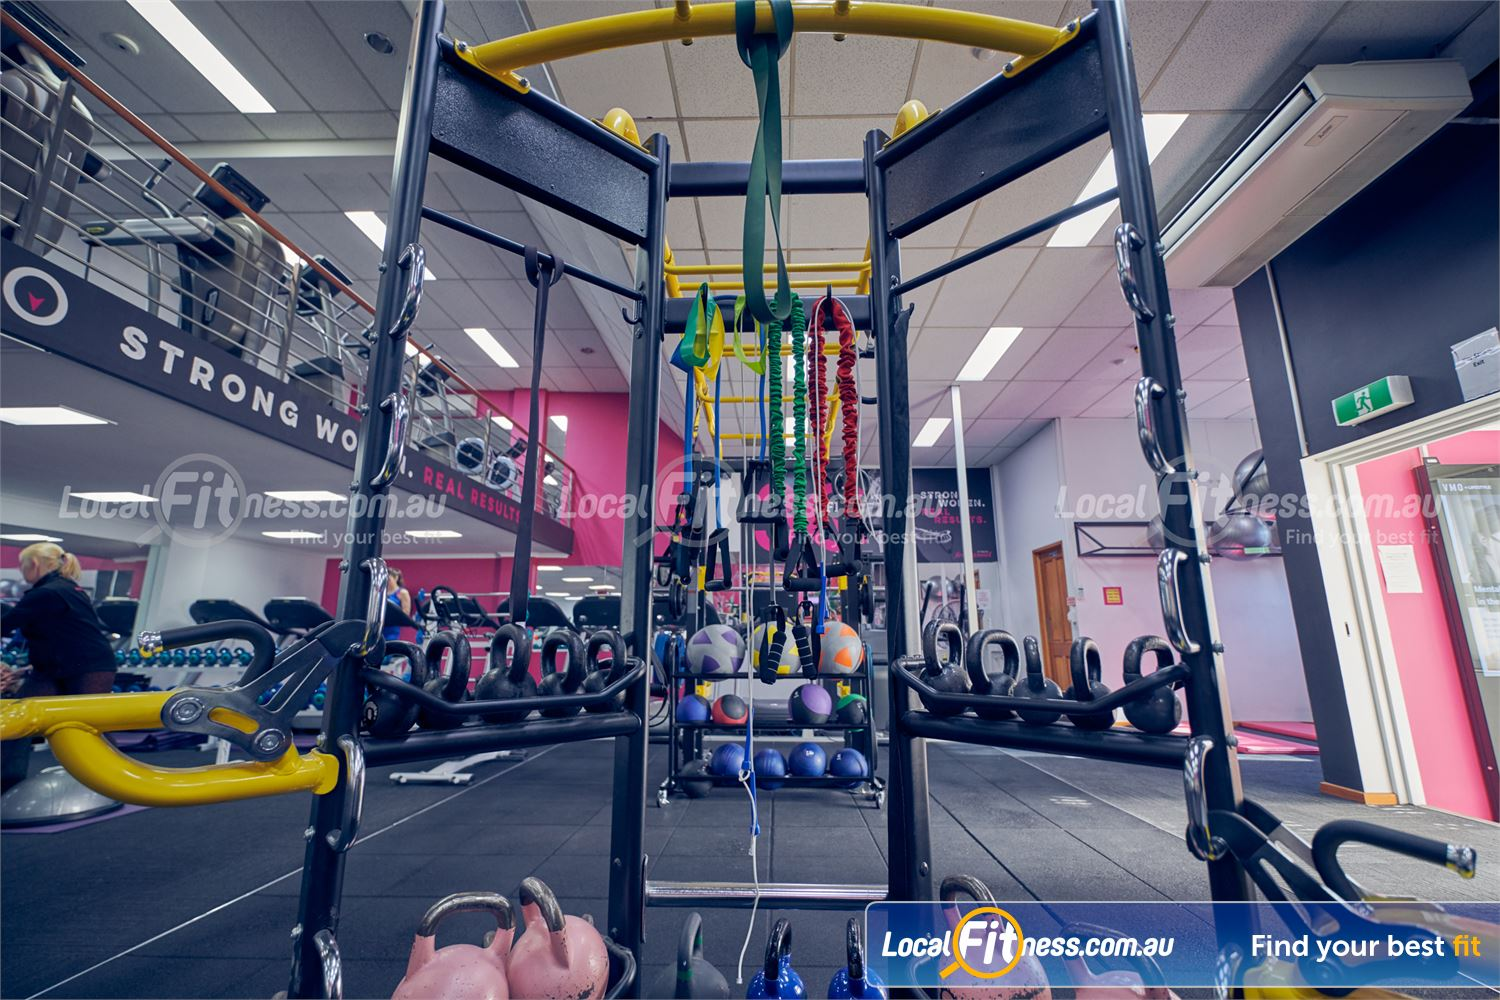 Fernwood Fitness Near Collingwood The fully equipped functional training area and Carlton HIIT gym.